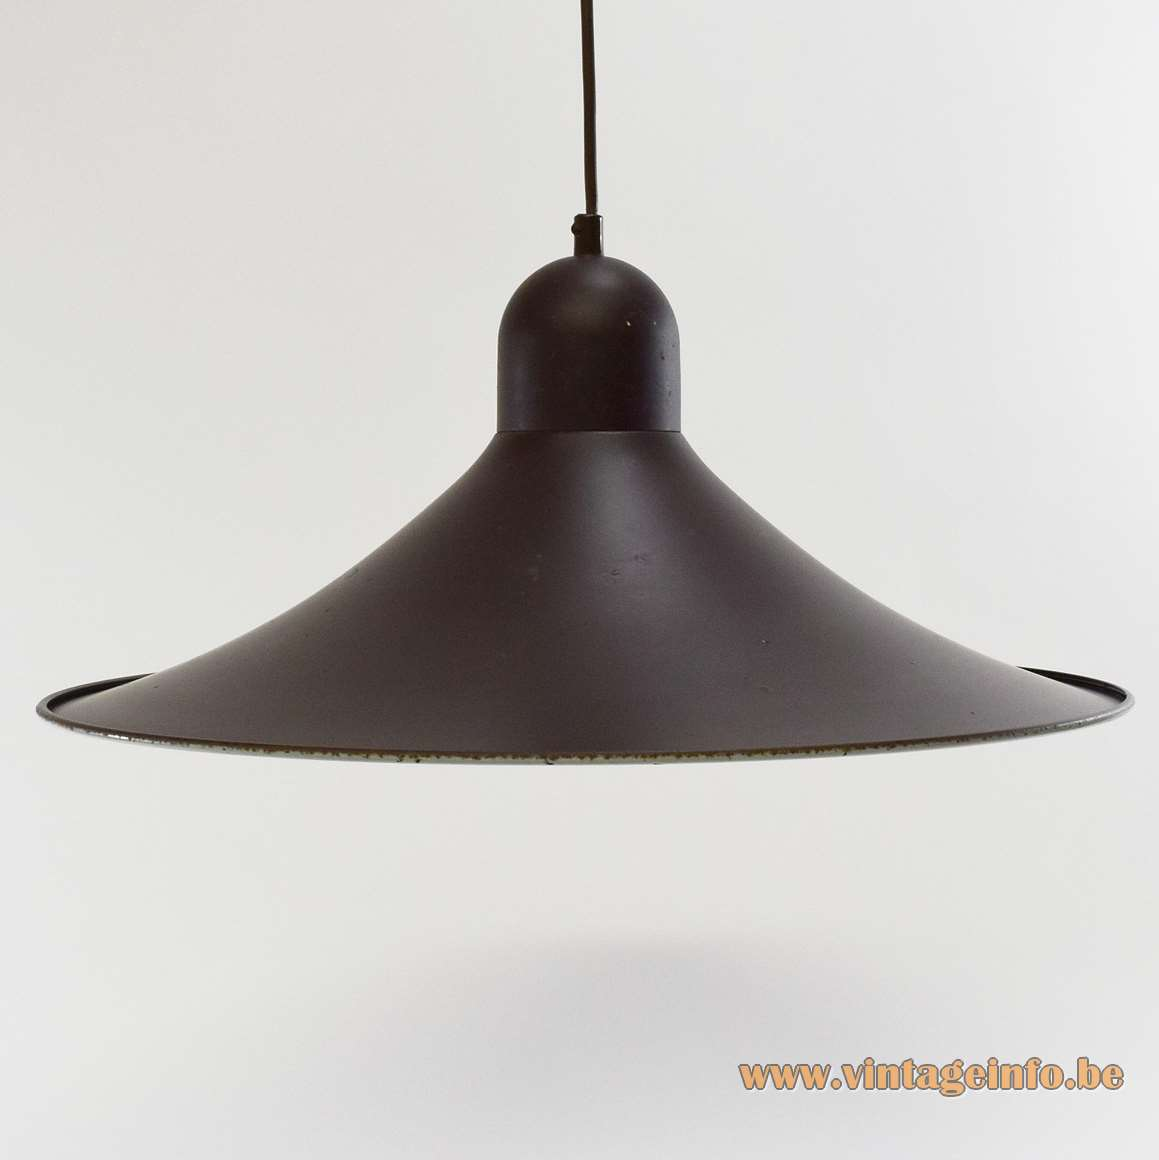 Brown witch hat pendant lamp metal iron lampshade Massive Belgium 1970s 1980s Mid-Century Modern MCM